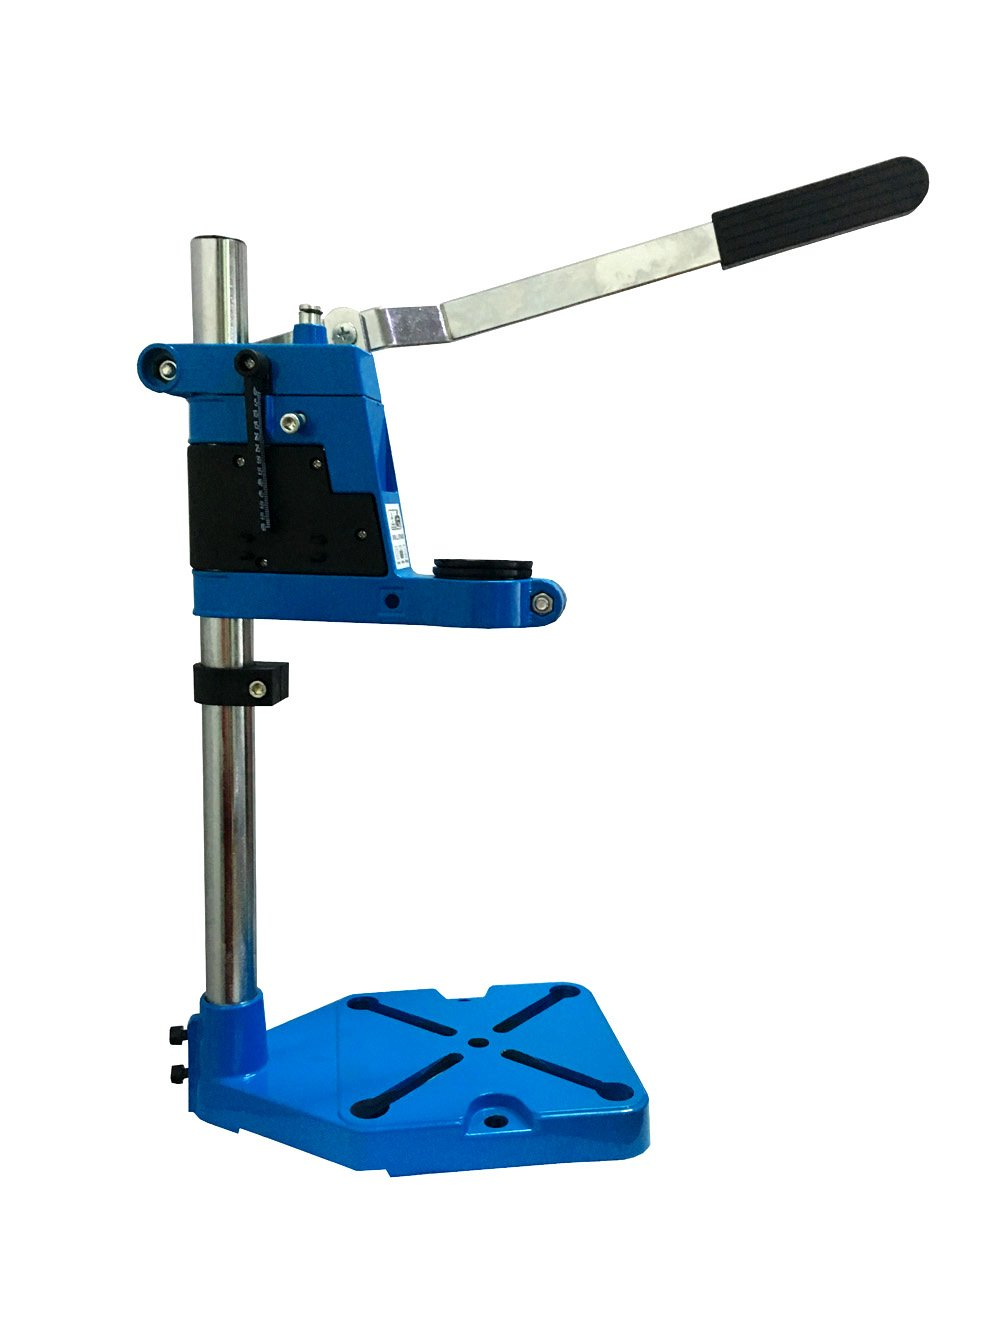 Rotary Tool Work Station Floor Drill Press Stand Table for Drill Workbench Repair Tool Clamp for Drilling Collet,drill Press Table ,Table Top Drill Press Yongkang Linda Machinery manufacturing Co. LTD